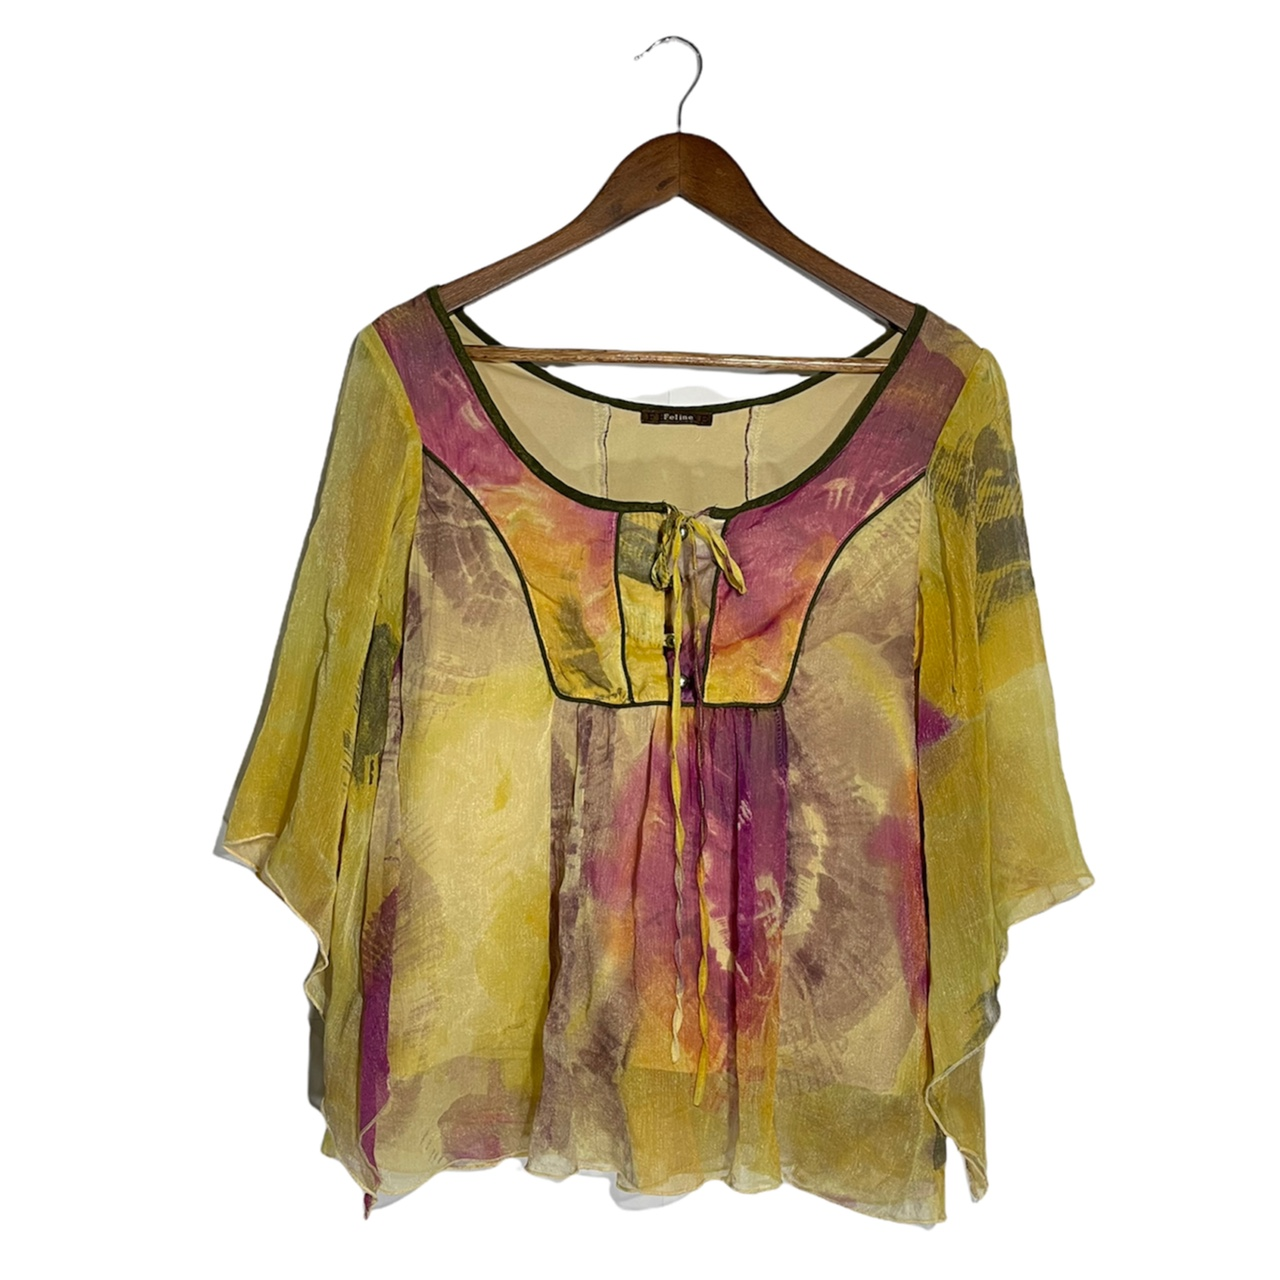 Product Image 1 - VINTAGE 90S YELLOW AND PINK